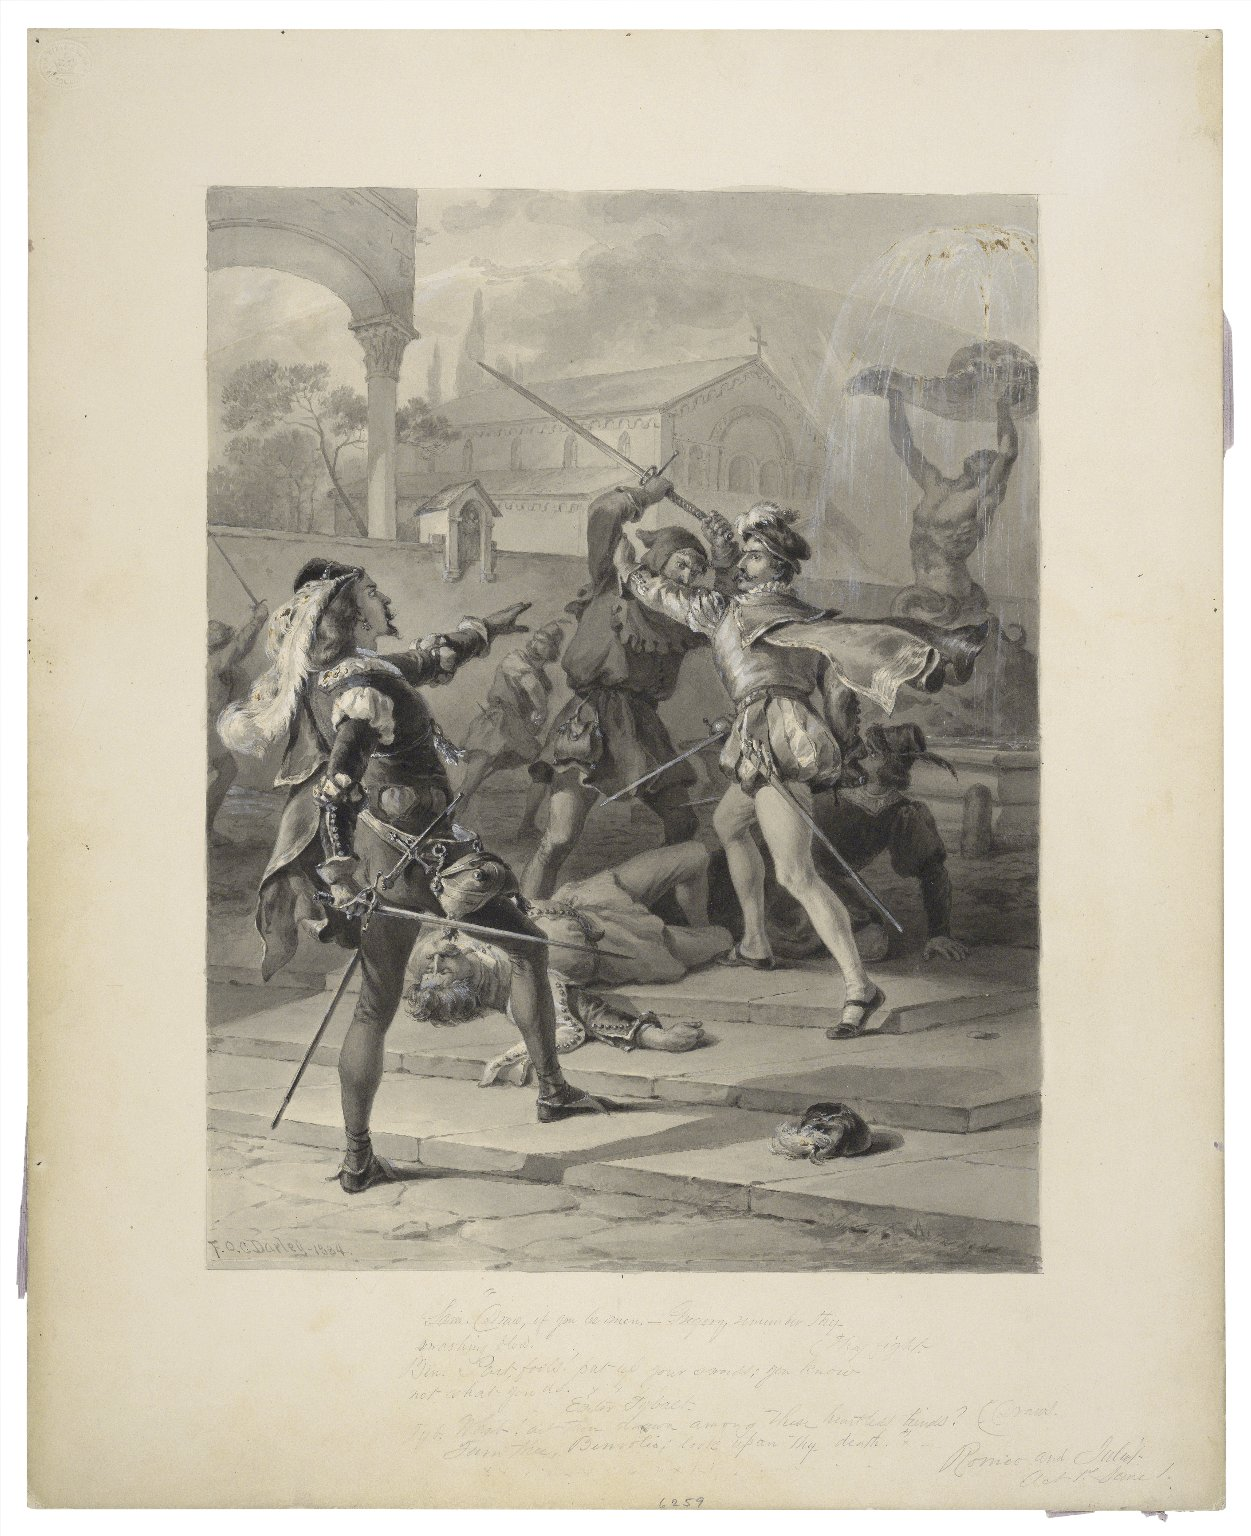 """Sam. """"Draw, if you be men"""" ... Tyb. """"What! art thou drawn among these heartless hinds? (draws) Turn thee, Benvolio, look upon thy death"""", Romeo and Juliet, act 1st, scene I [graphic] / F.O.C. Darley, 1884."""